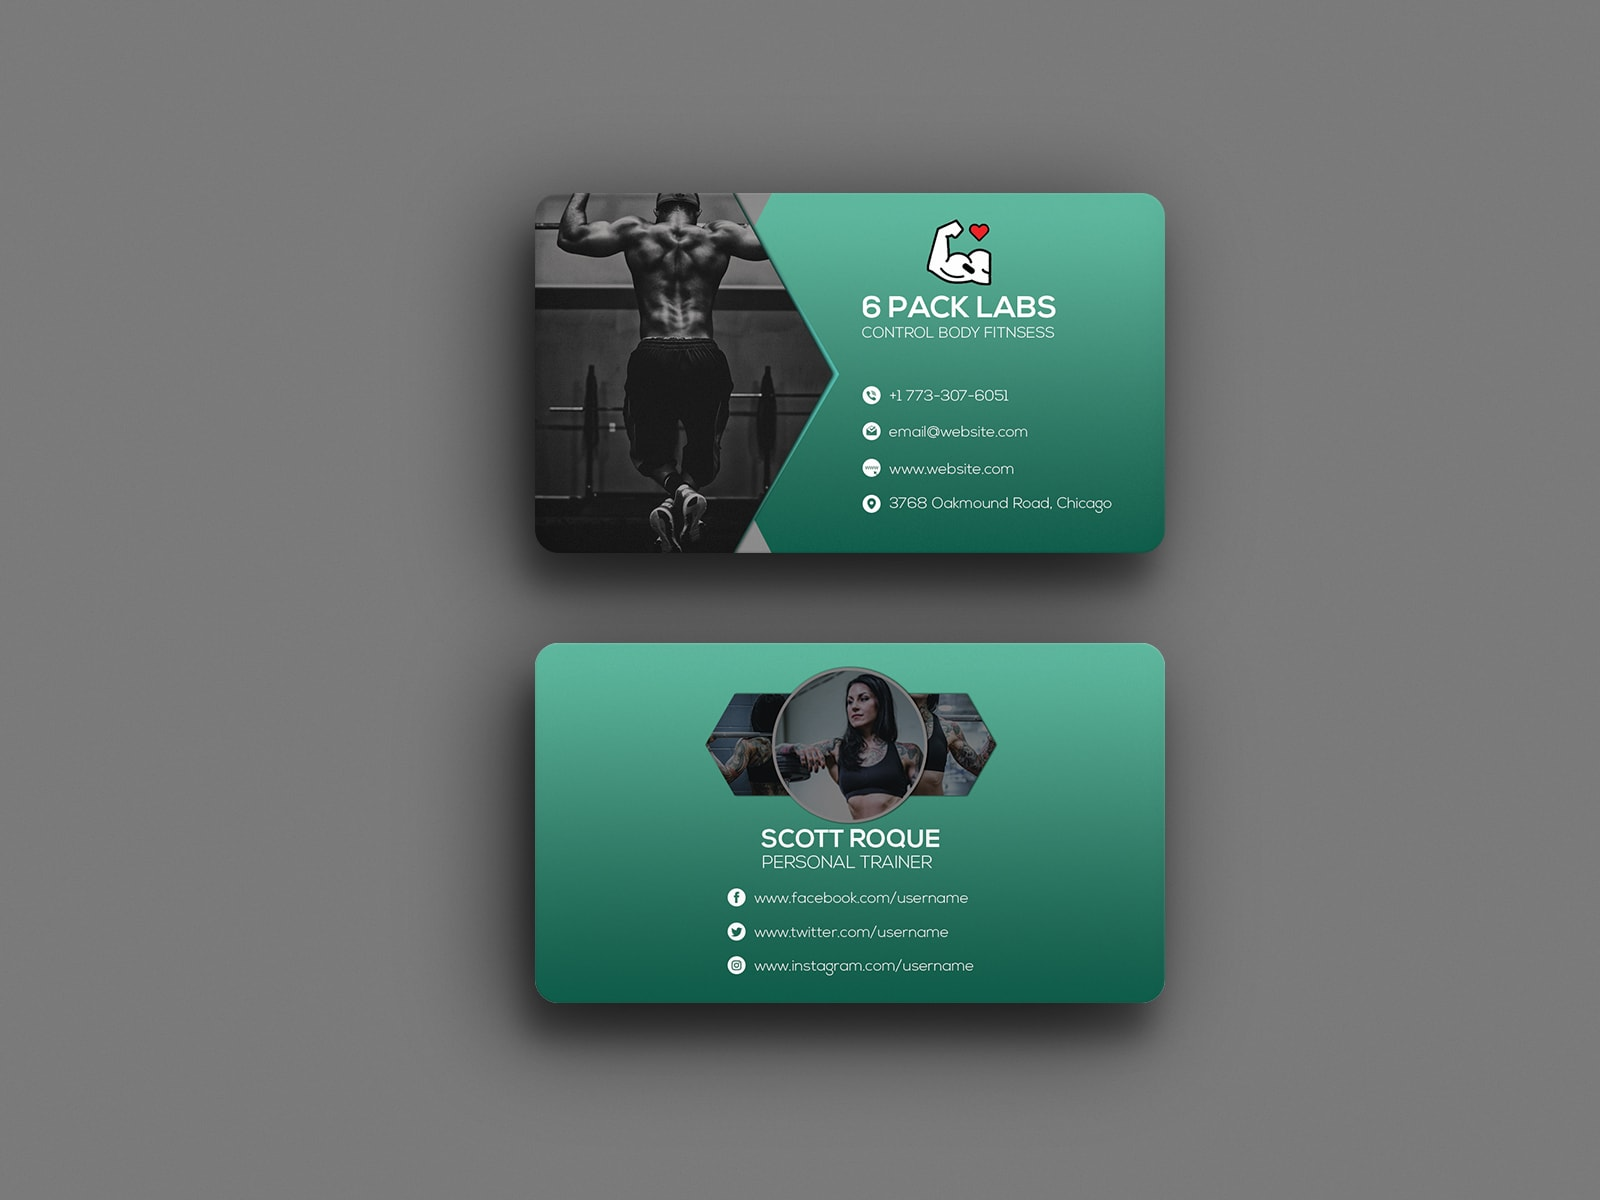 6 Pack abs Personal Trainer Business Card